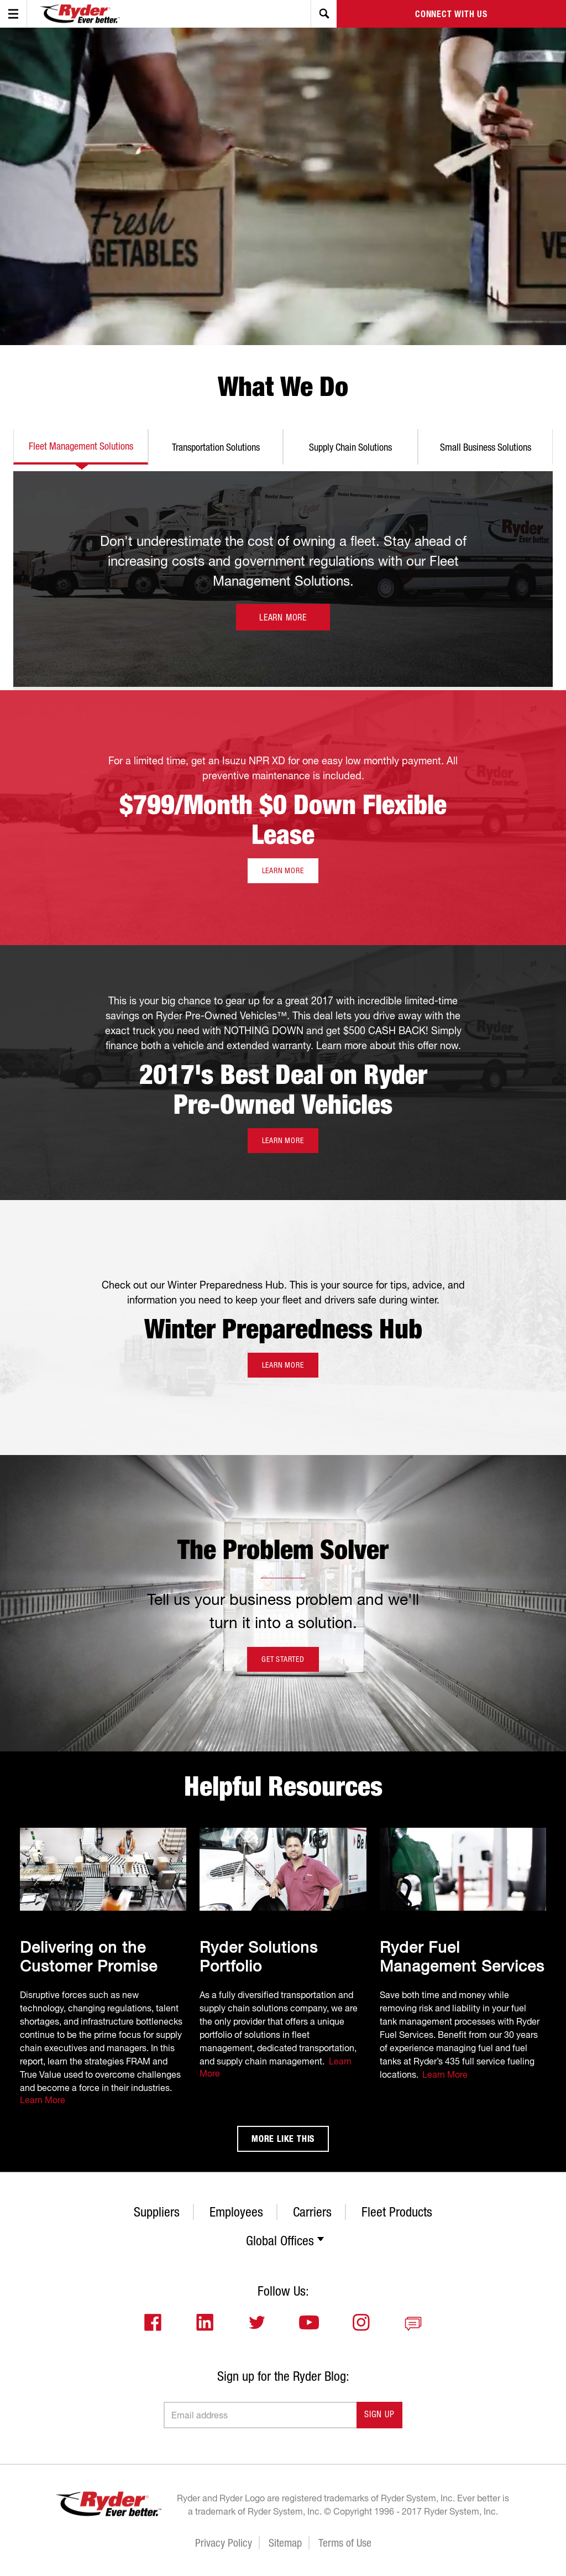 Ryder Competitors, Revenue and Employees - Owler Company Profile